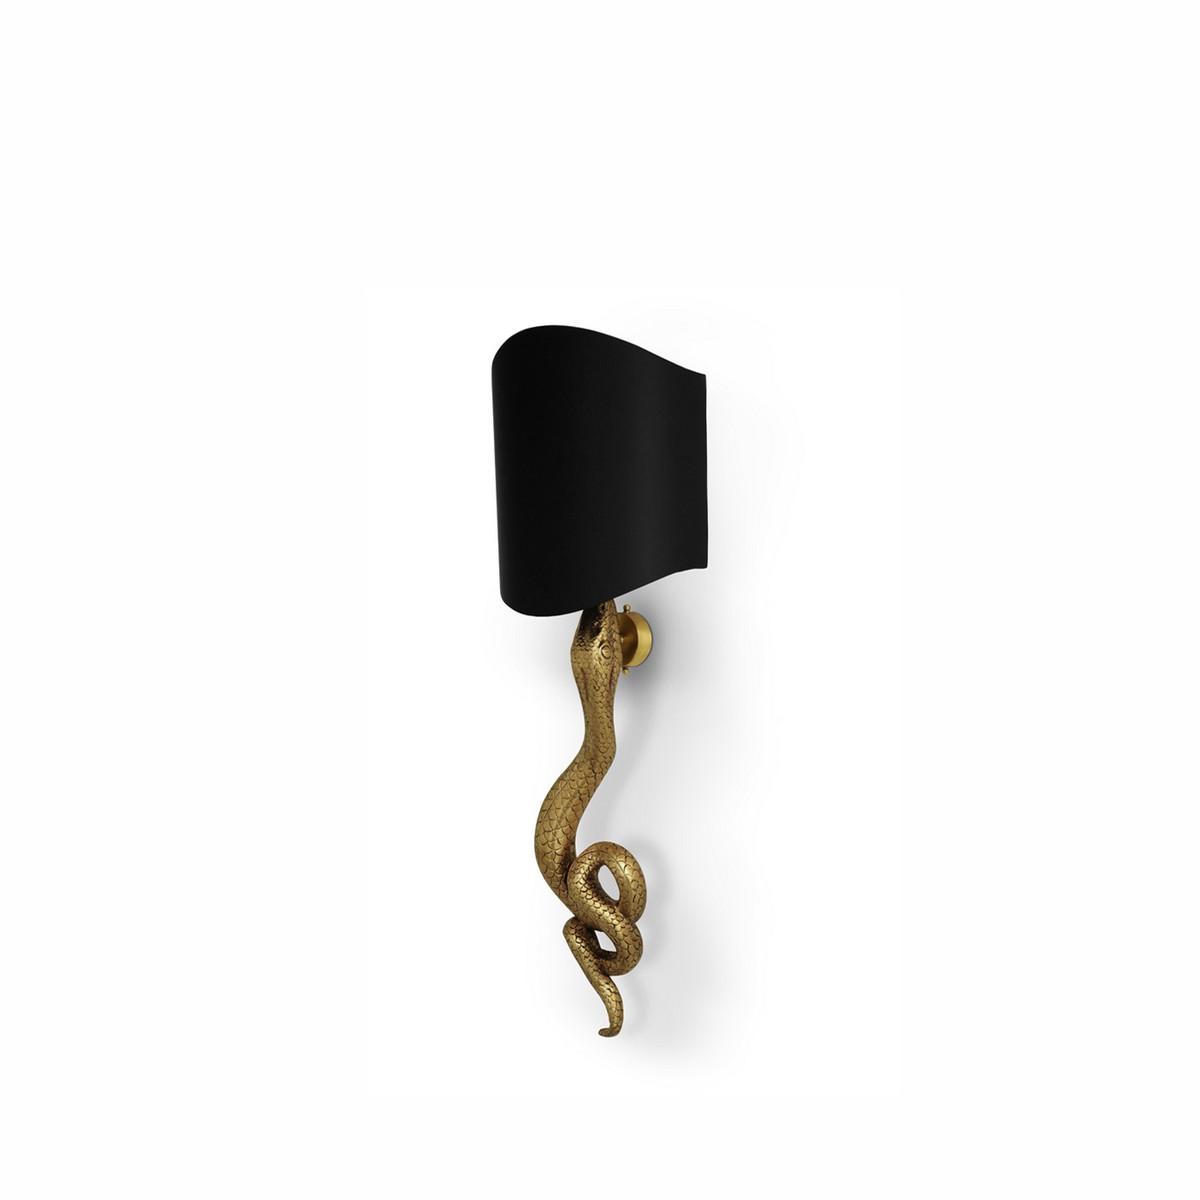 Exclusive Lighting Designs You Will Love lighting Exclusive Lighting Designs You Will Love serpentine sconce2